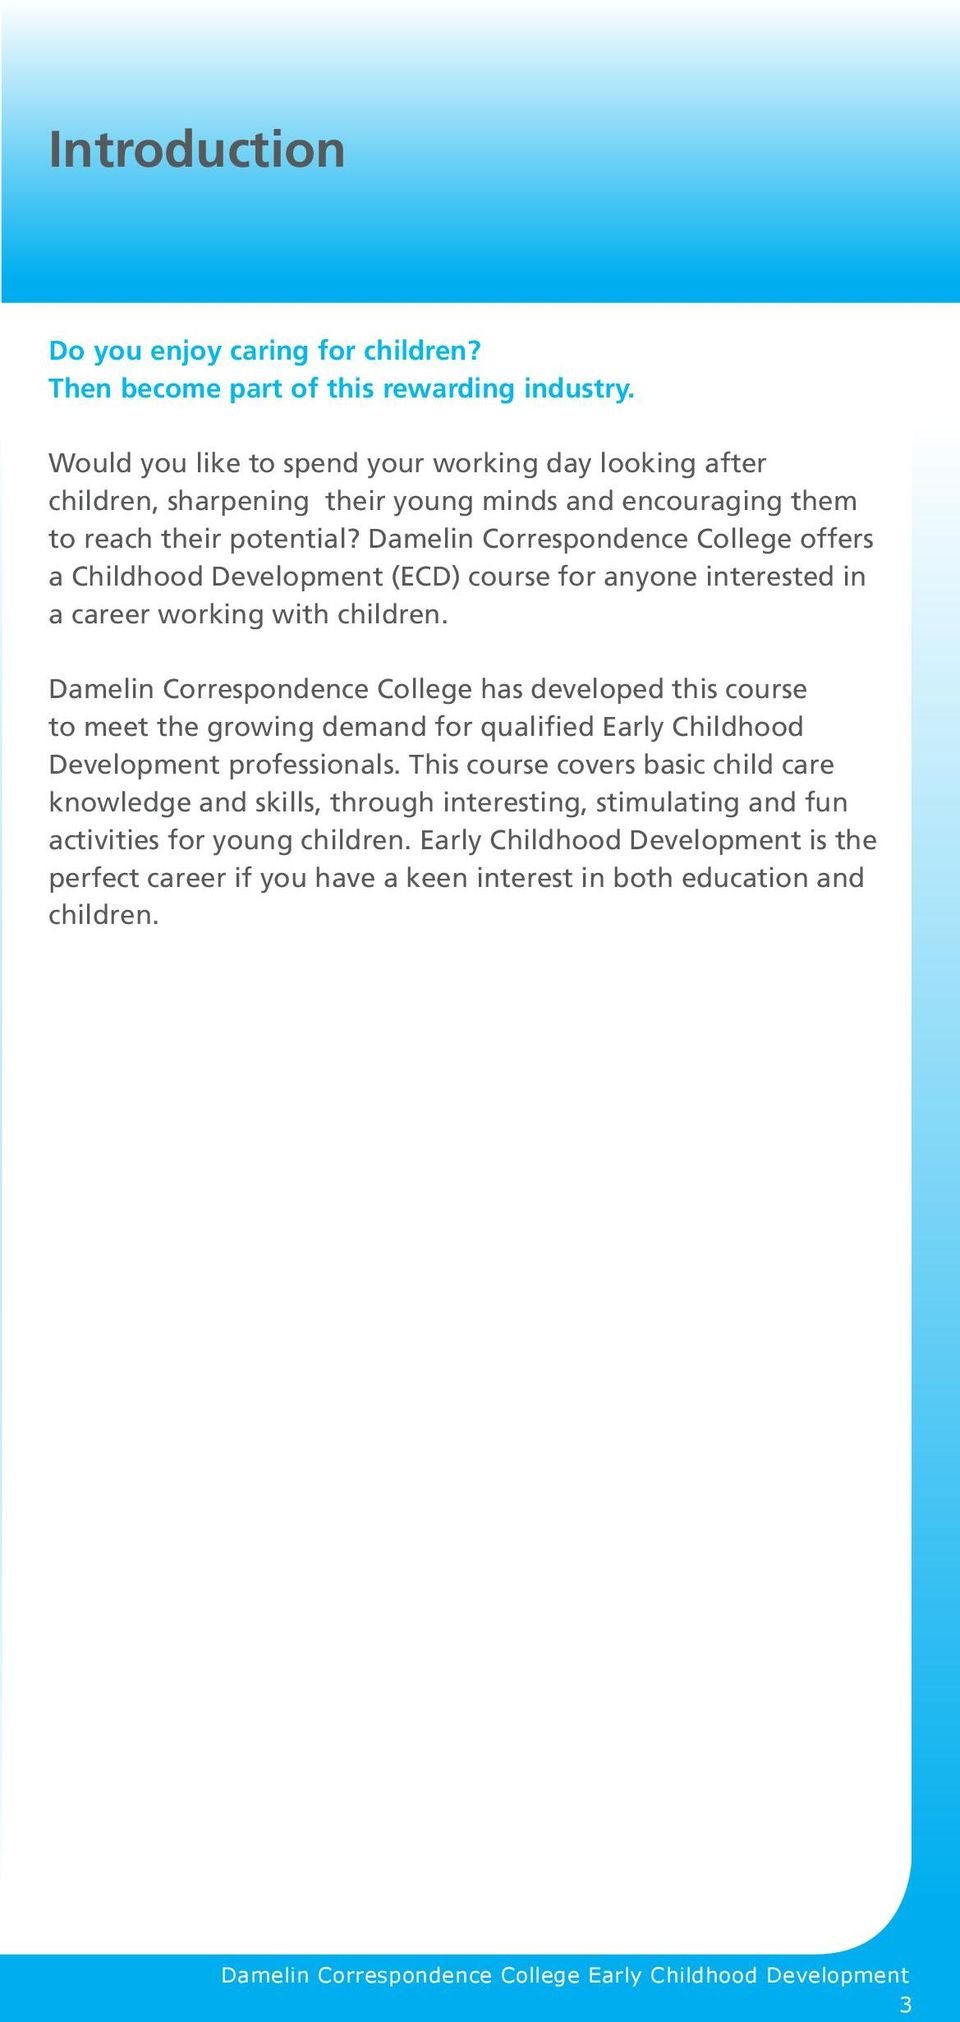 Damelin Correspondence College offers a Childhood Development (ECD) course for anyone interested in a career working with children.